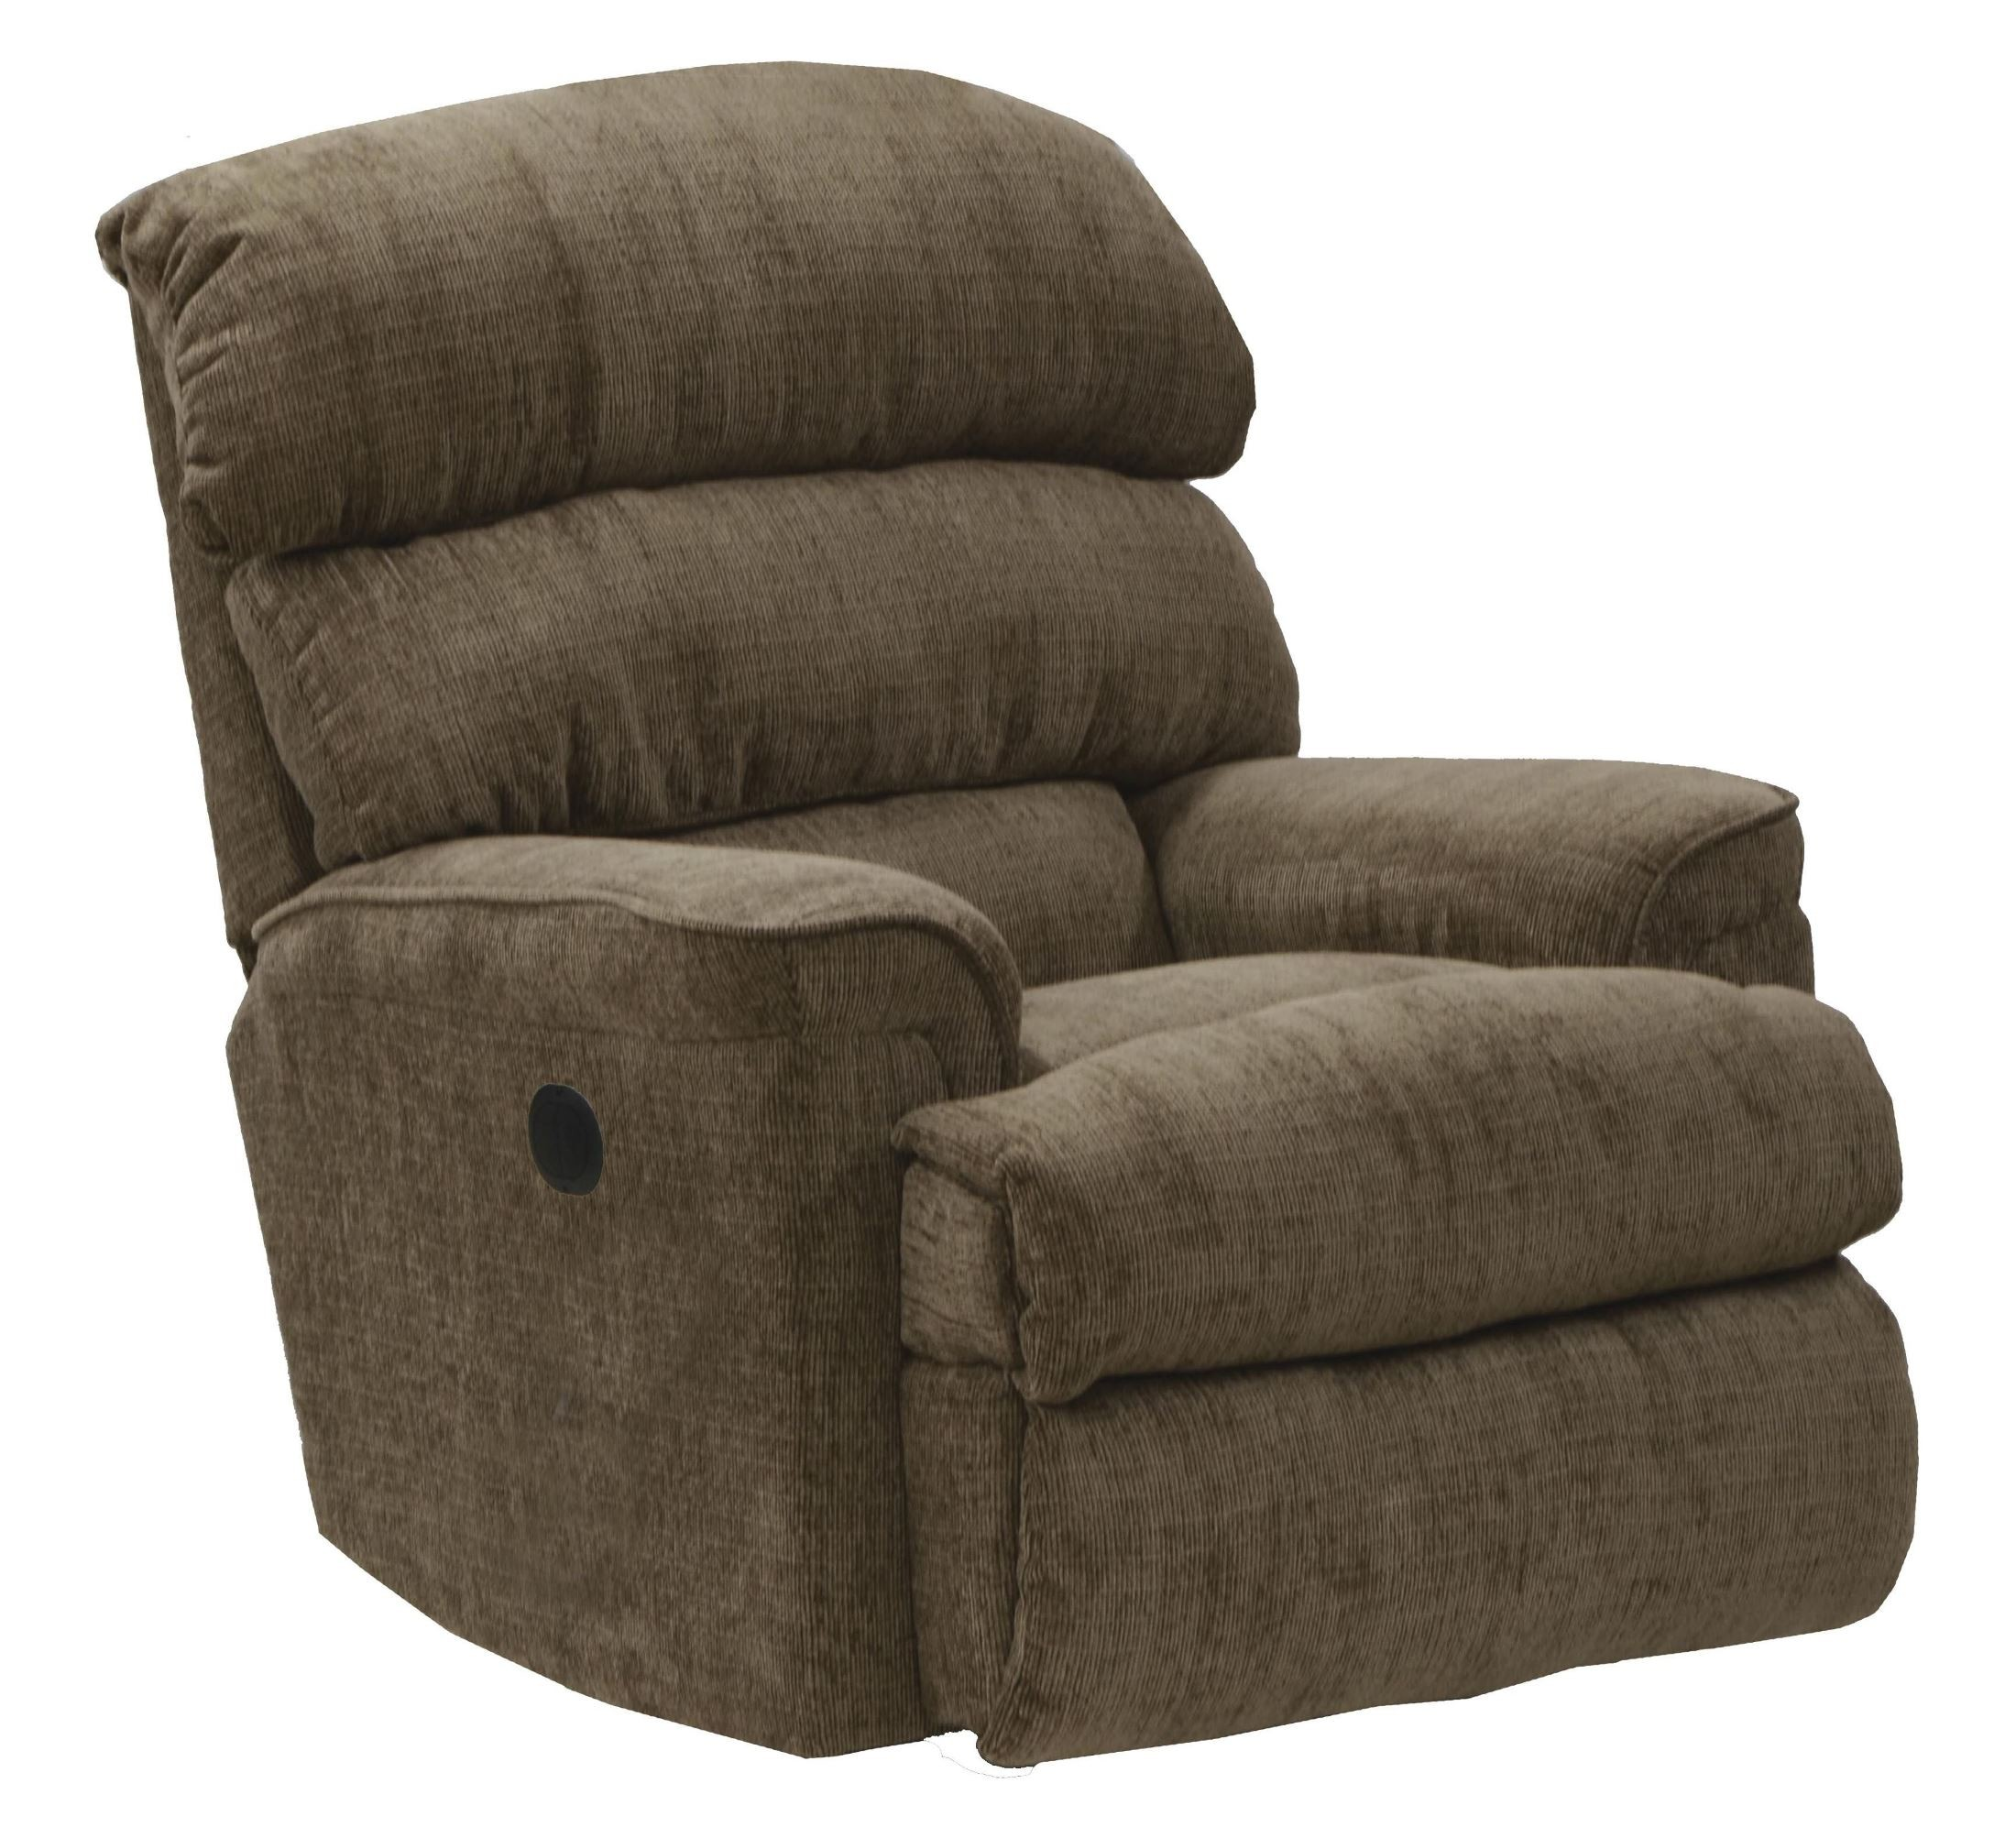 Pearson coffee rocker recliner from catnapper 47392179318 for Catnapper cloud nine chaise recliner